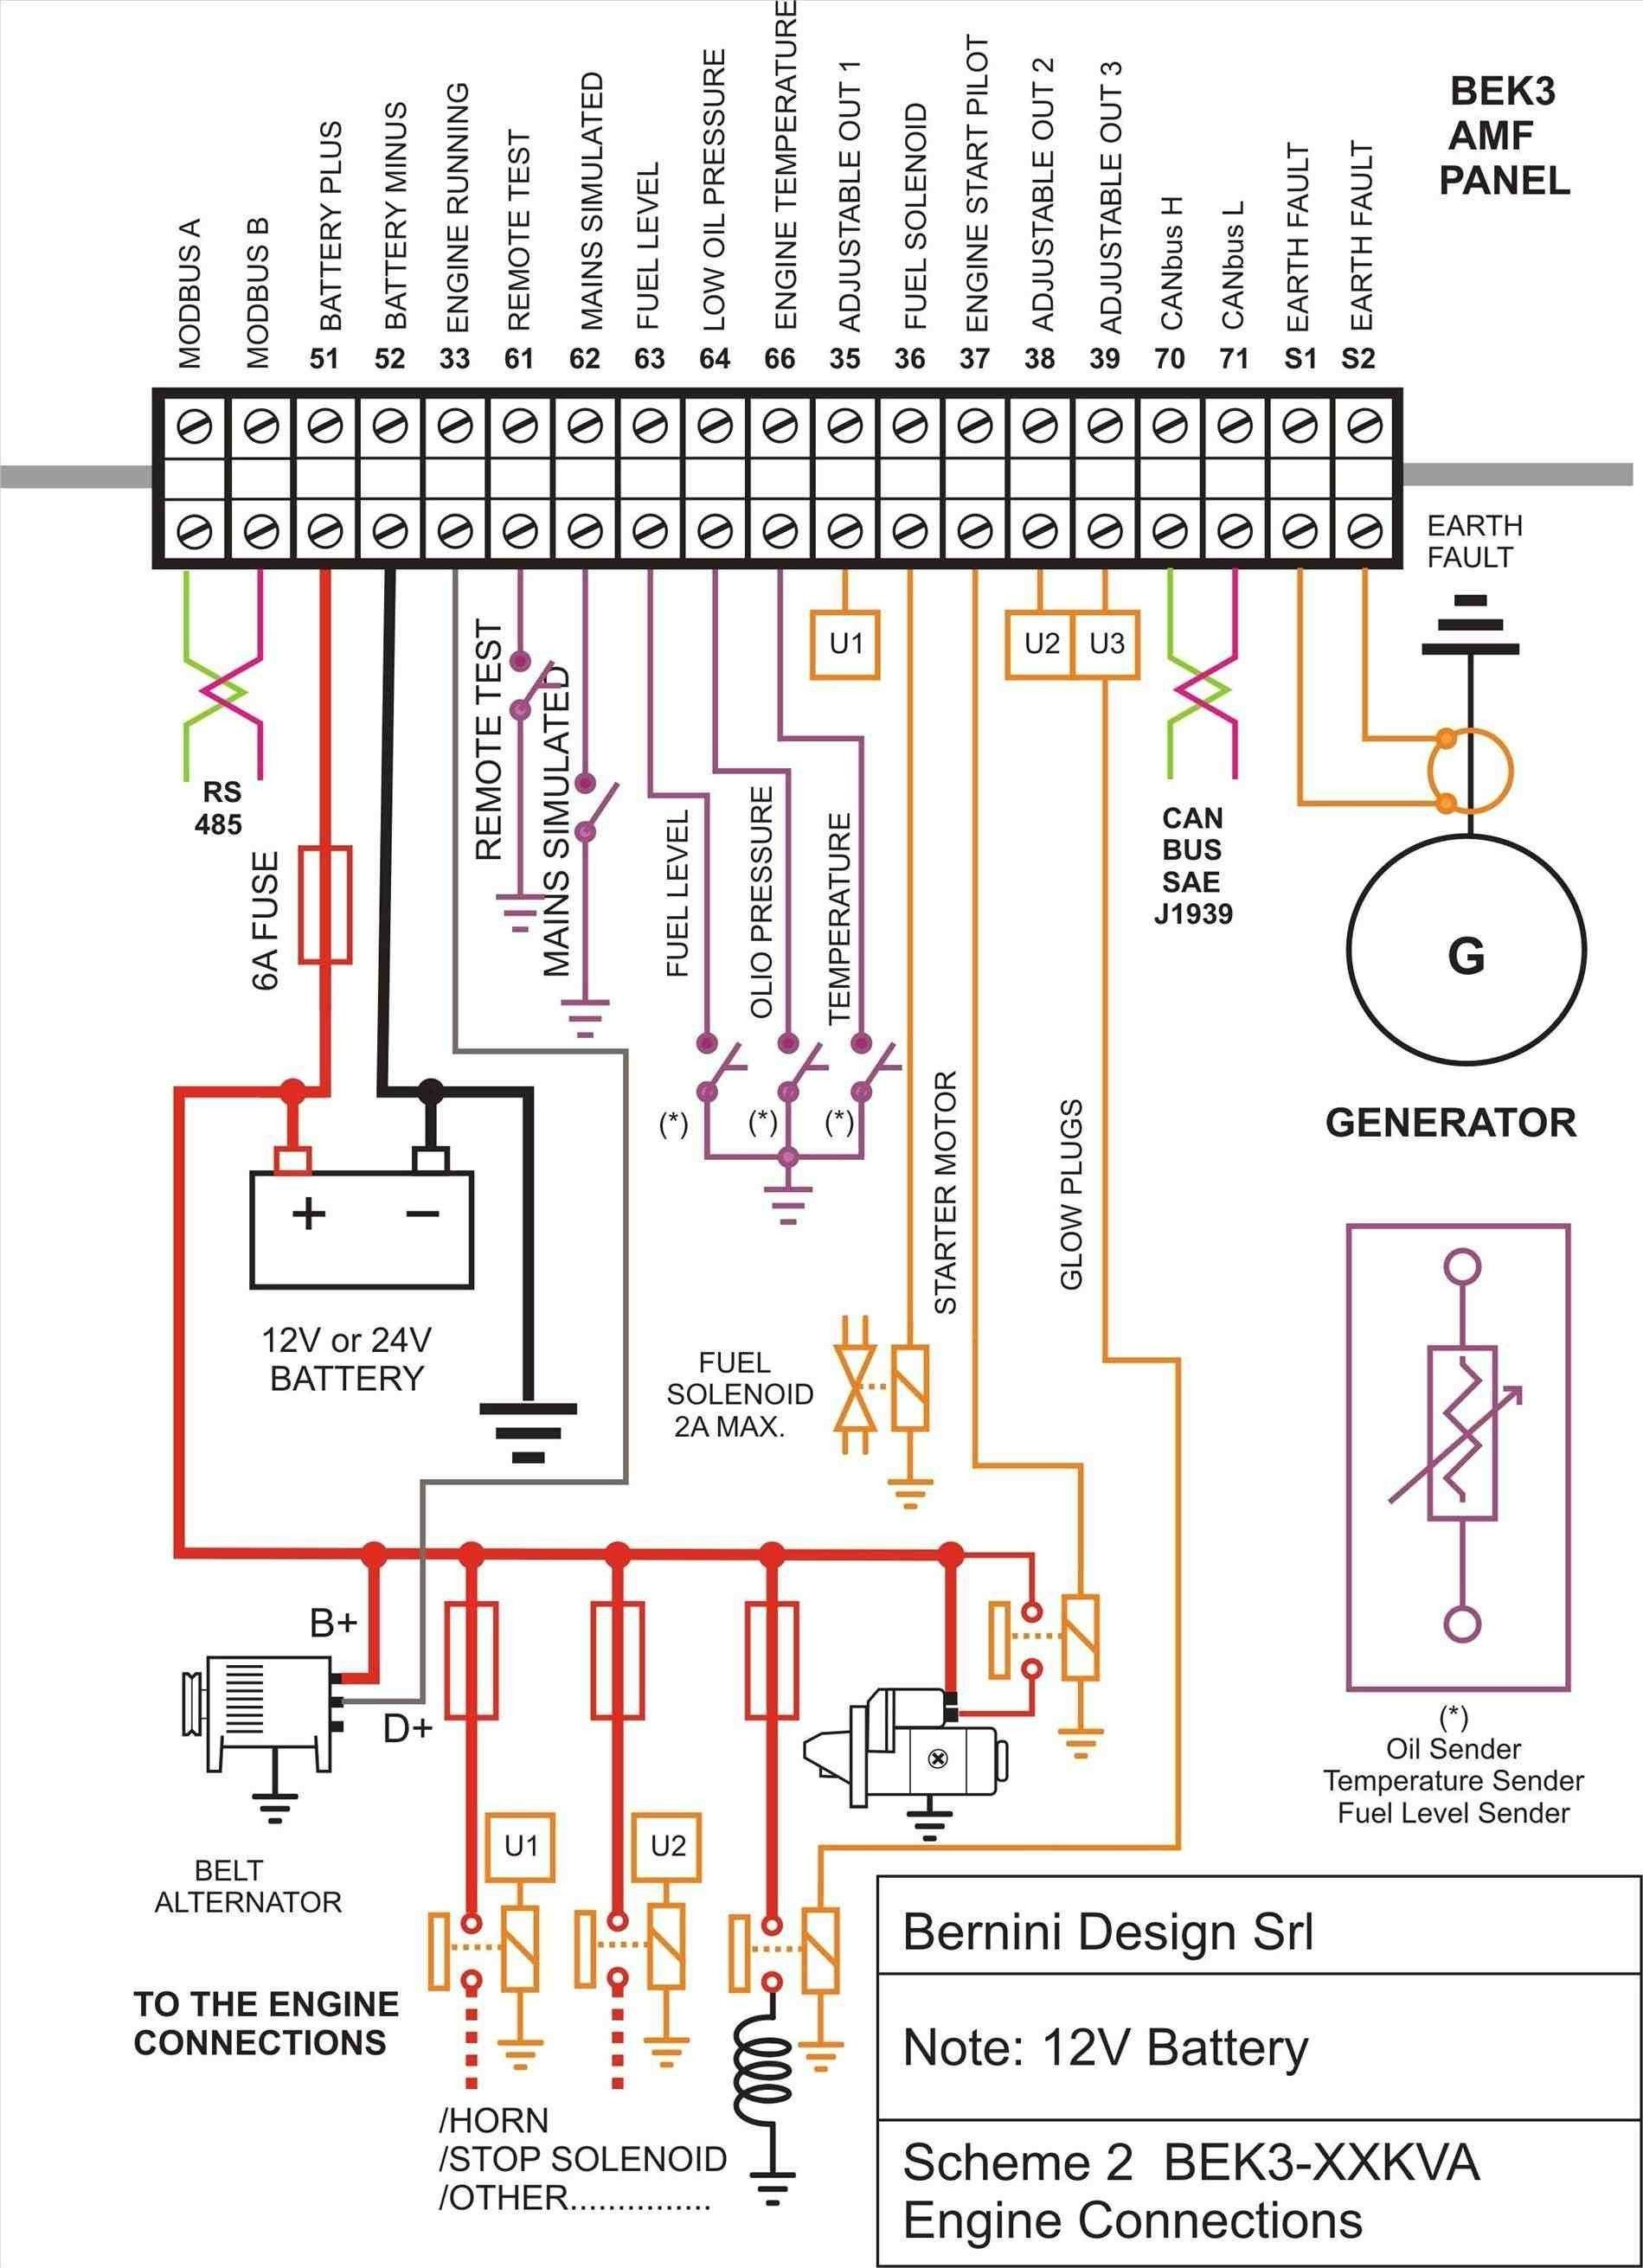 house wiring circuit diagram pdf fresh typical wiring diagram for mix house wiring circuit diagram pdf [ 1899 x 2622 Pixel ]